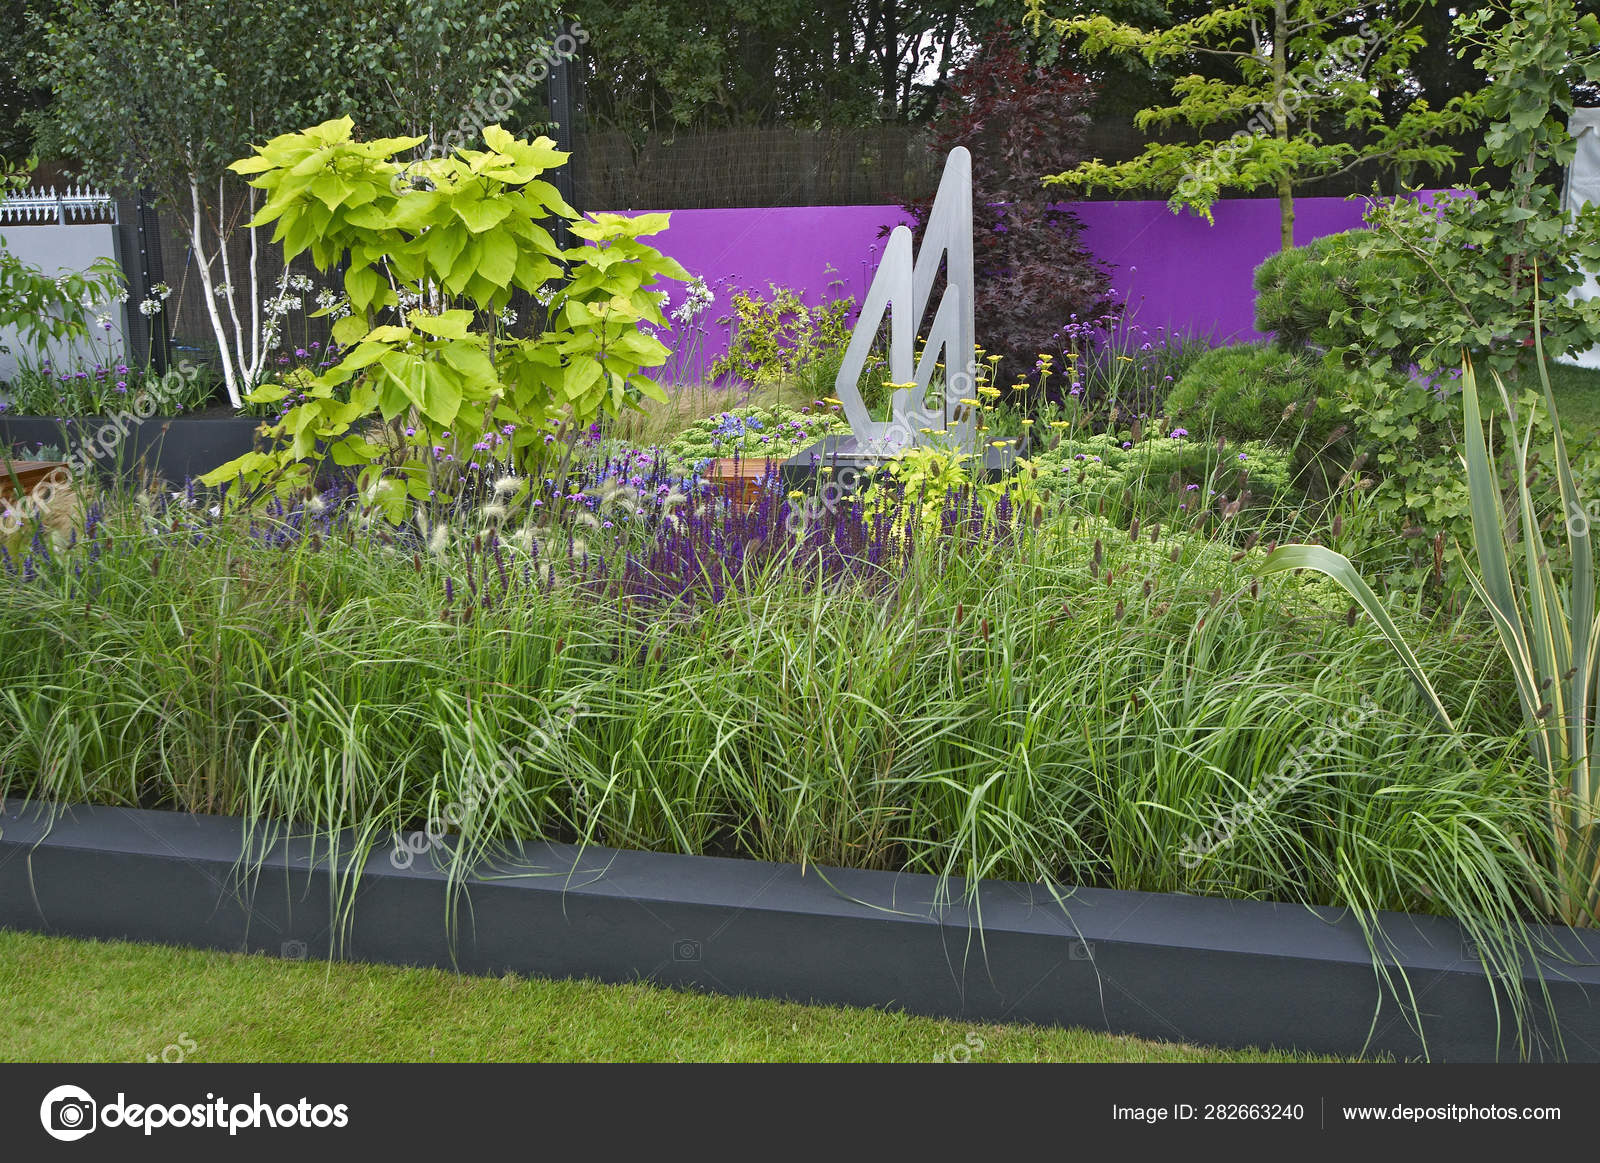 A Modern Garden With A Raised Grass Border To Mixed Planting Of